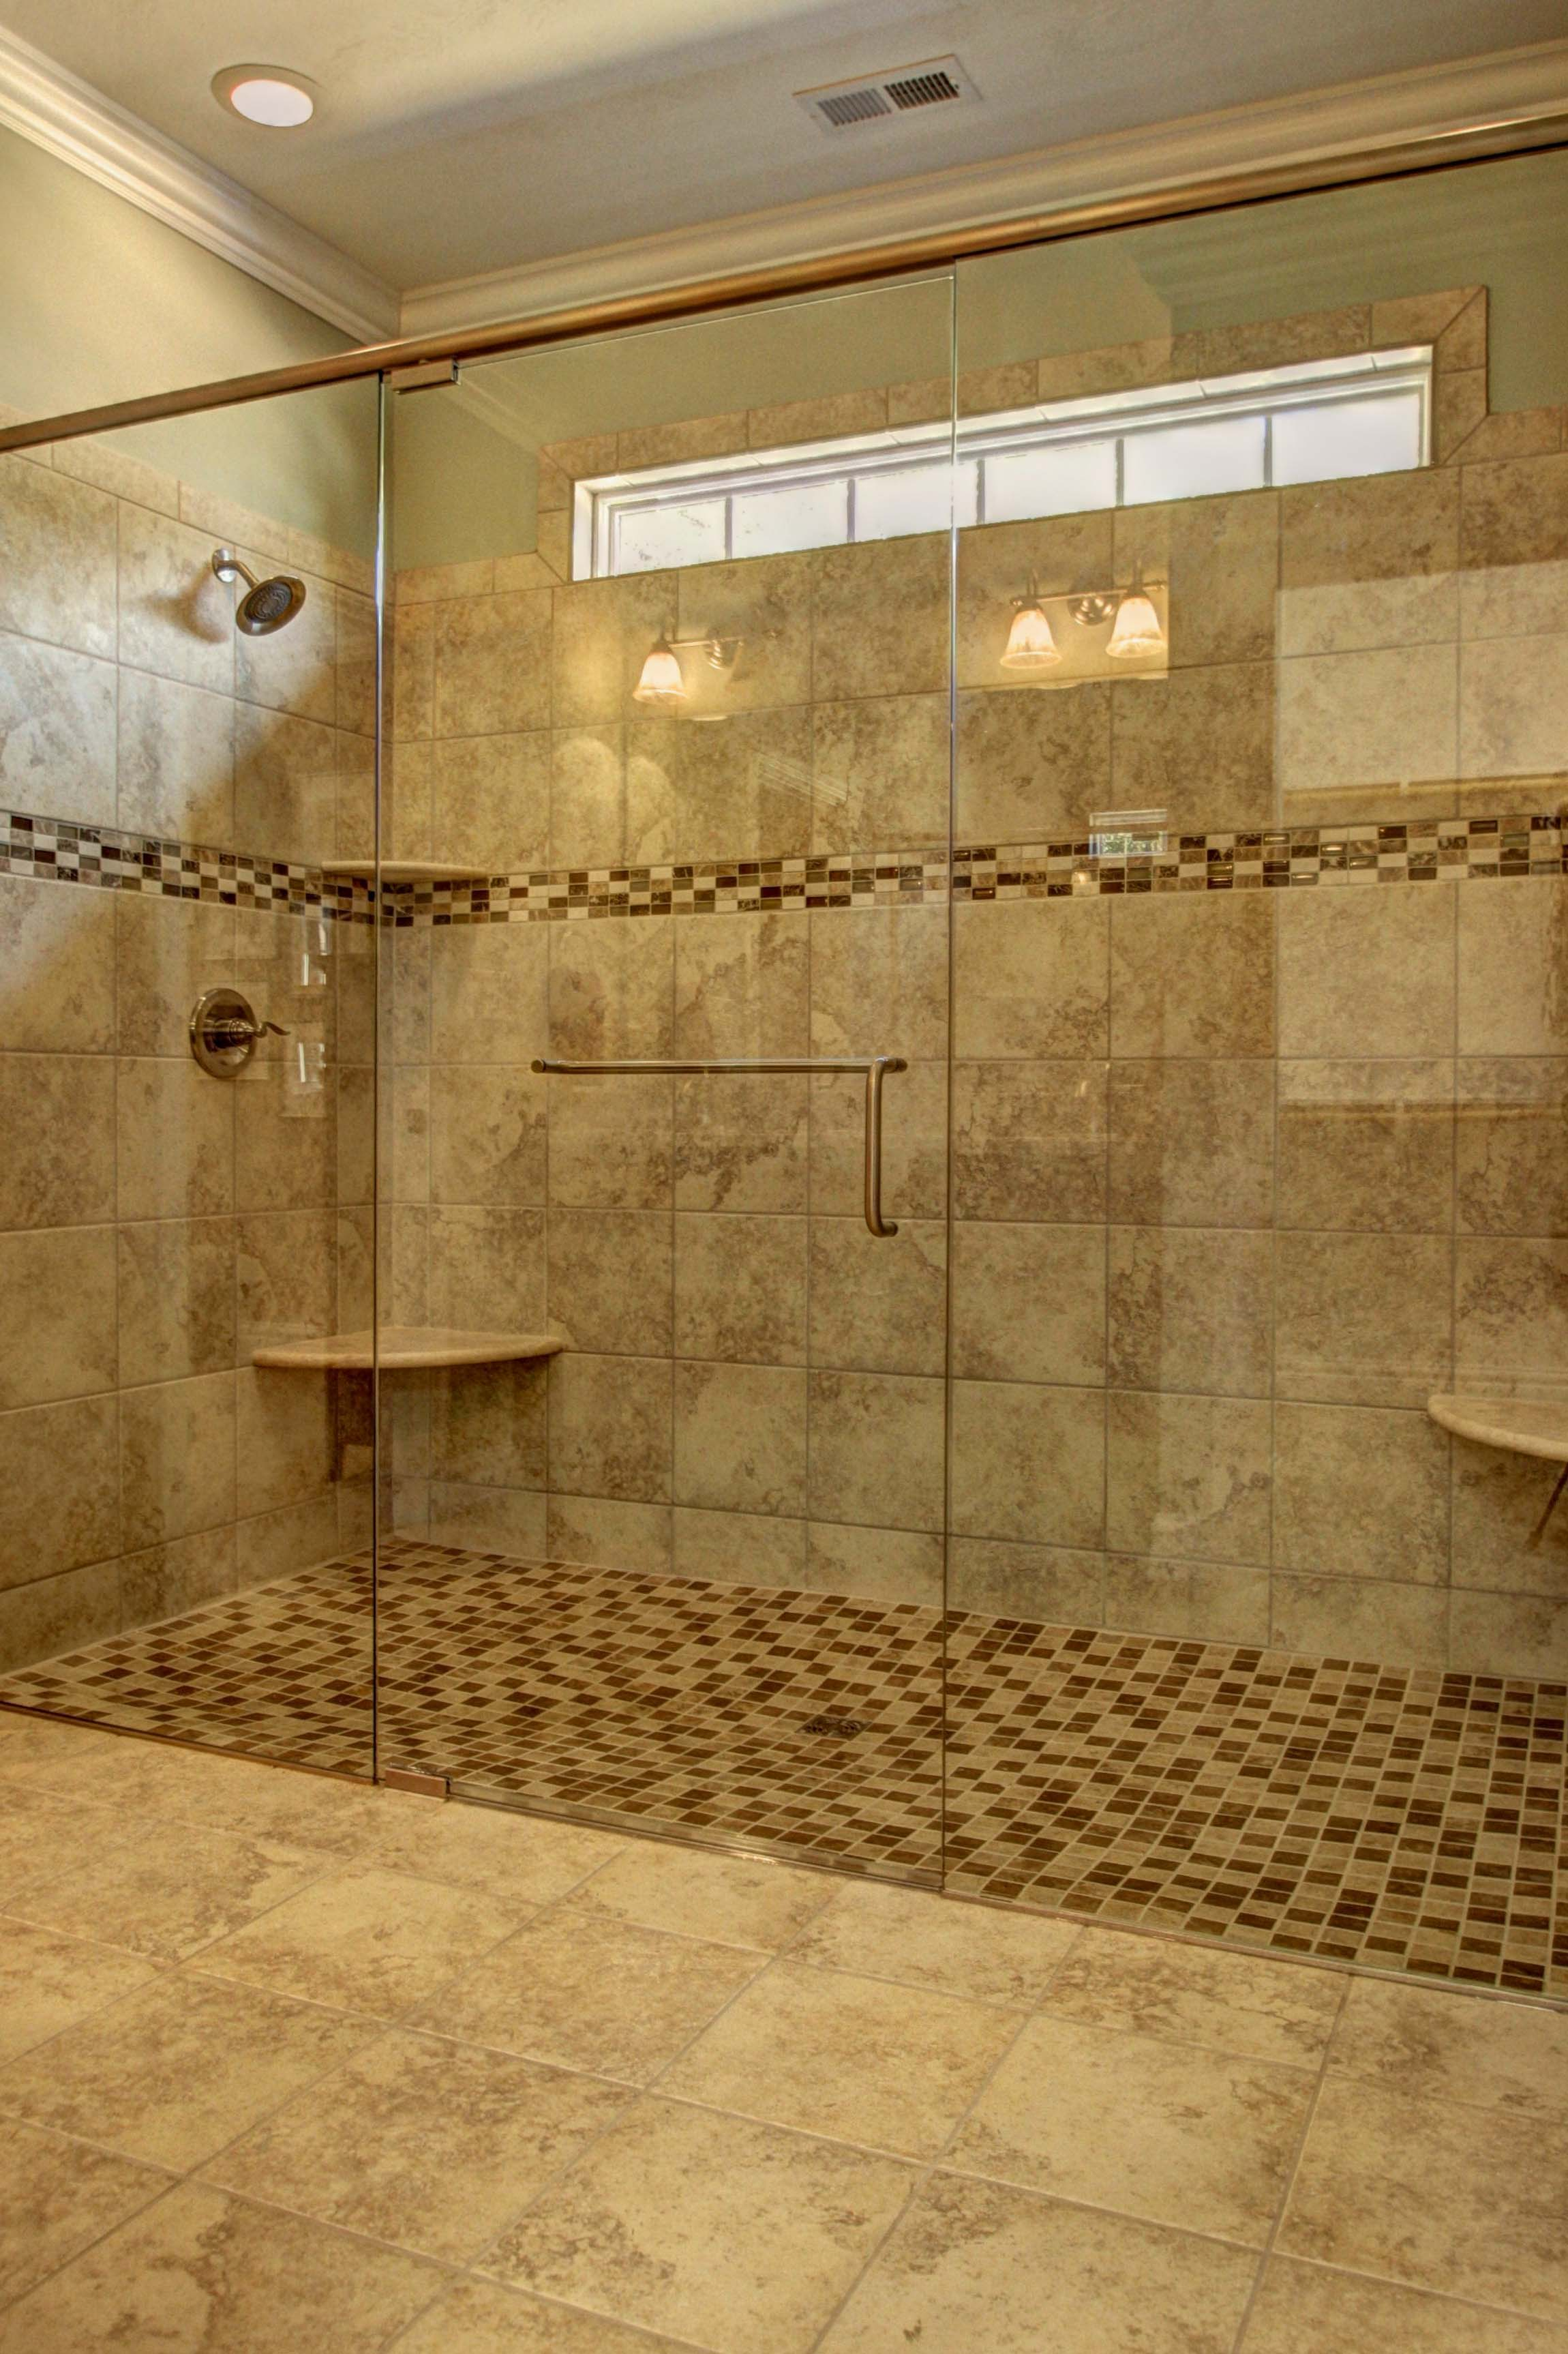 Barrier Free Showers | Wm S Wirt Construction Inc